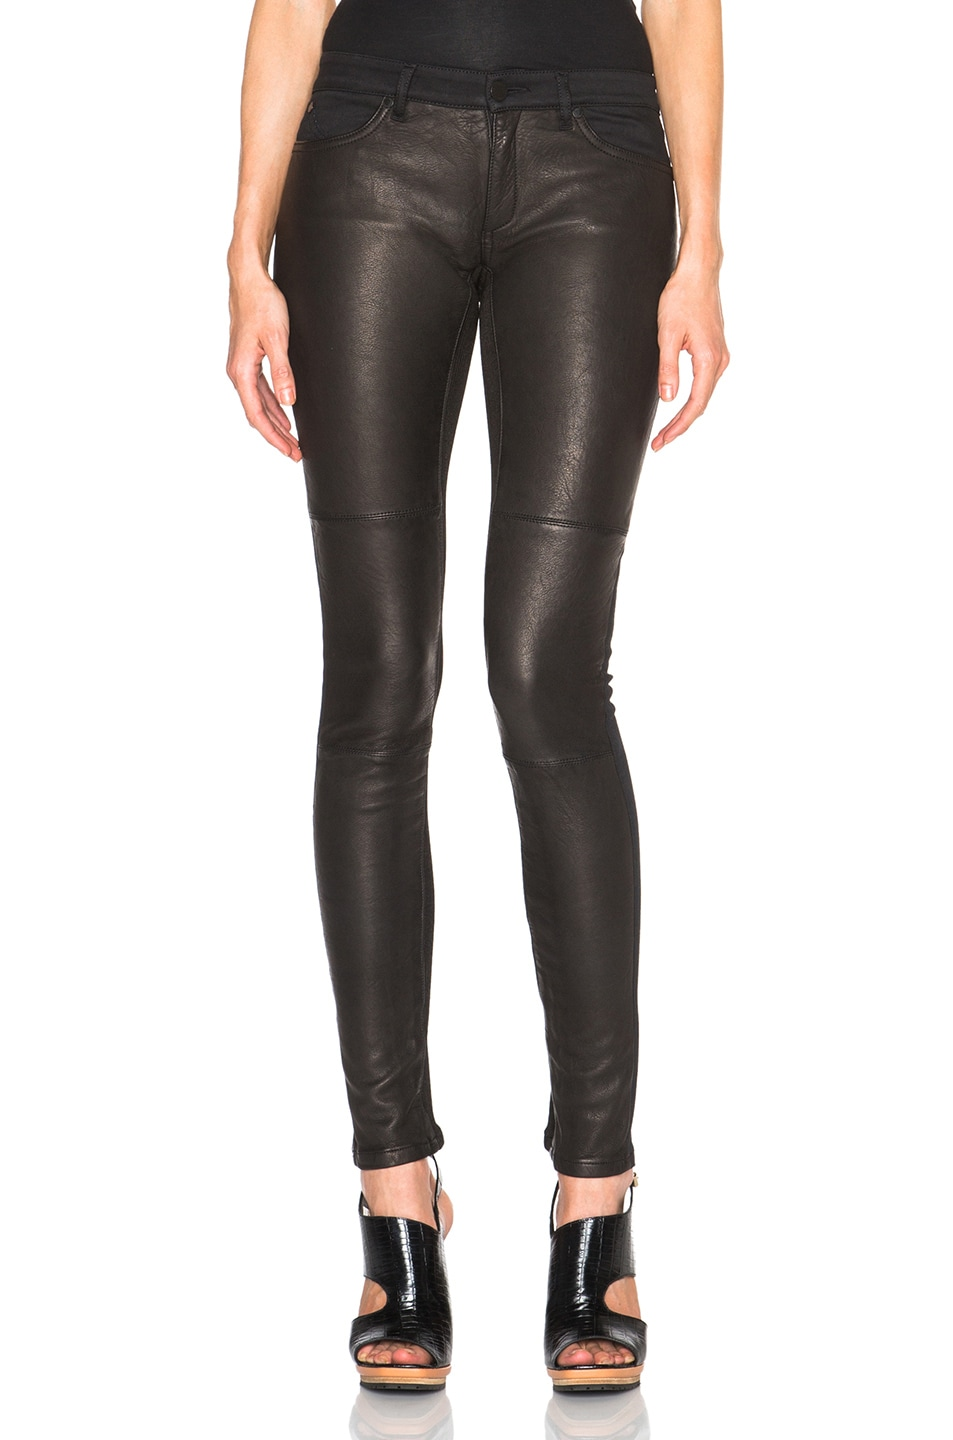 Image 1 of Superfine Flash Friend Leather Jeans in Black